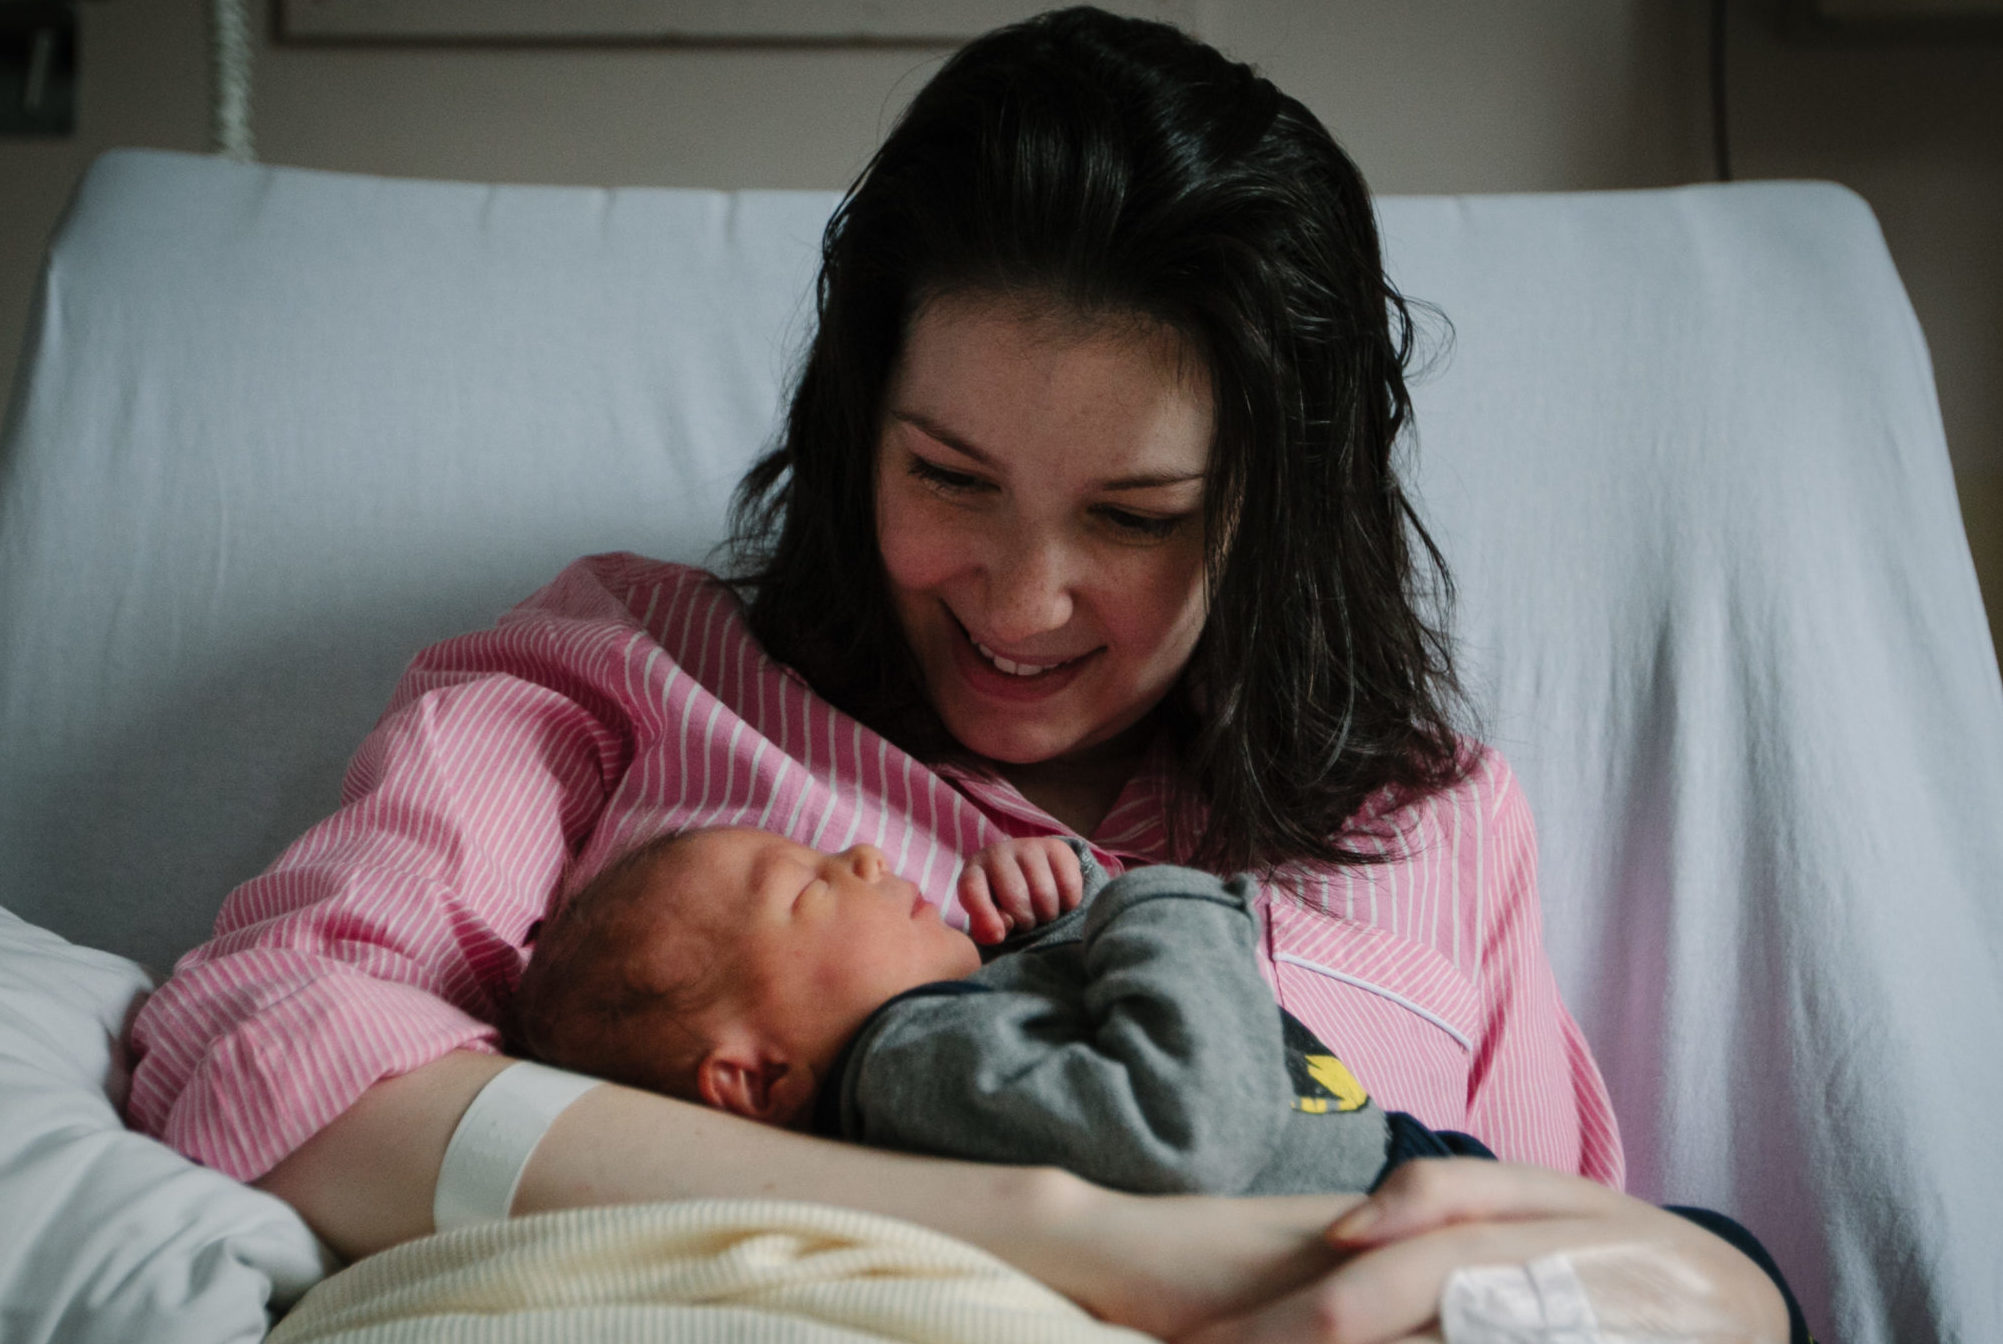 Brave new mum Lucy Lintott cuddles little son LJ in maternity ward